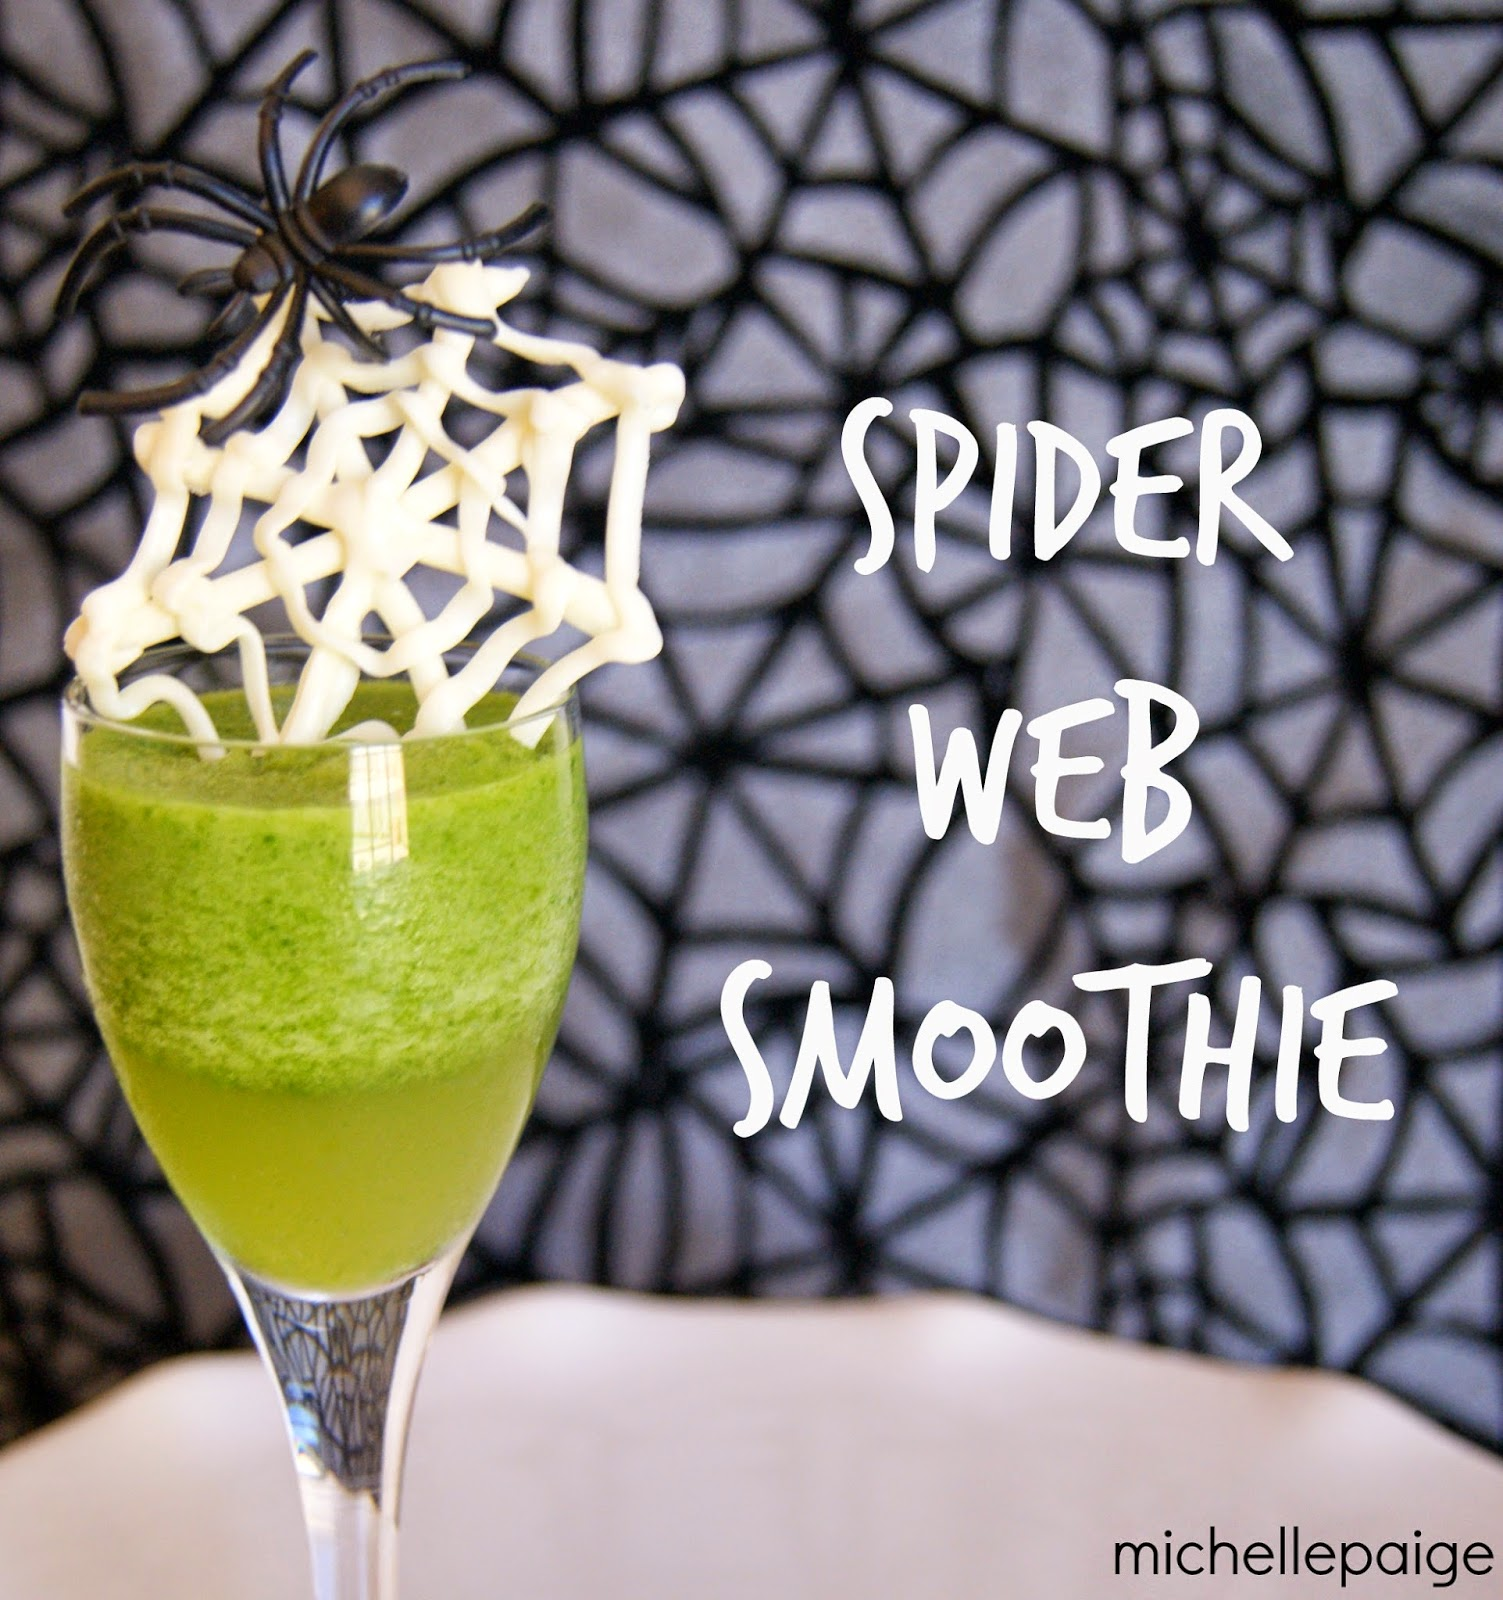 Spider Web Smoothie